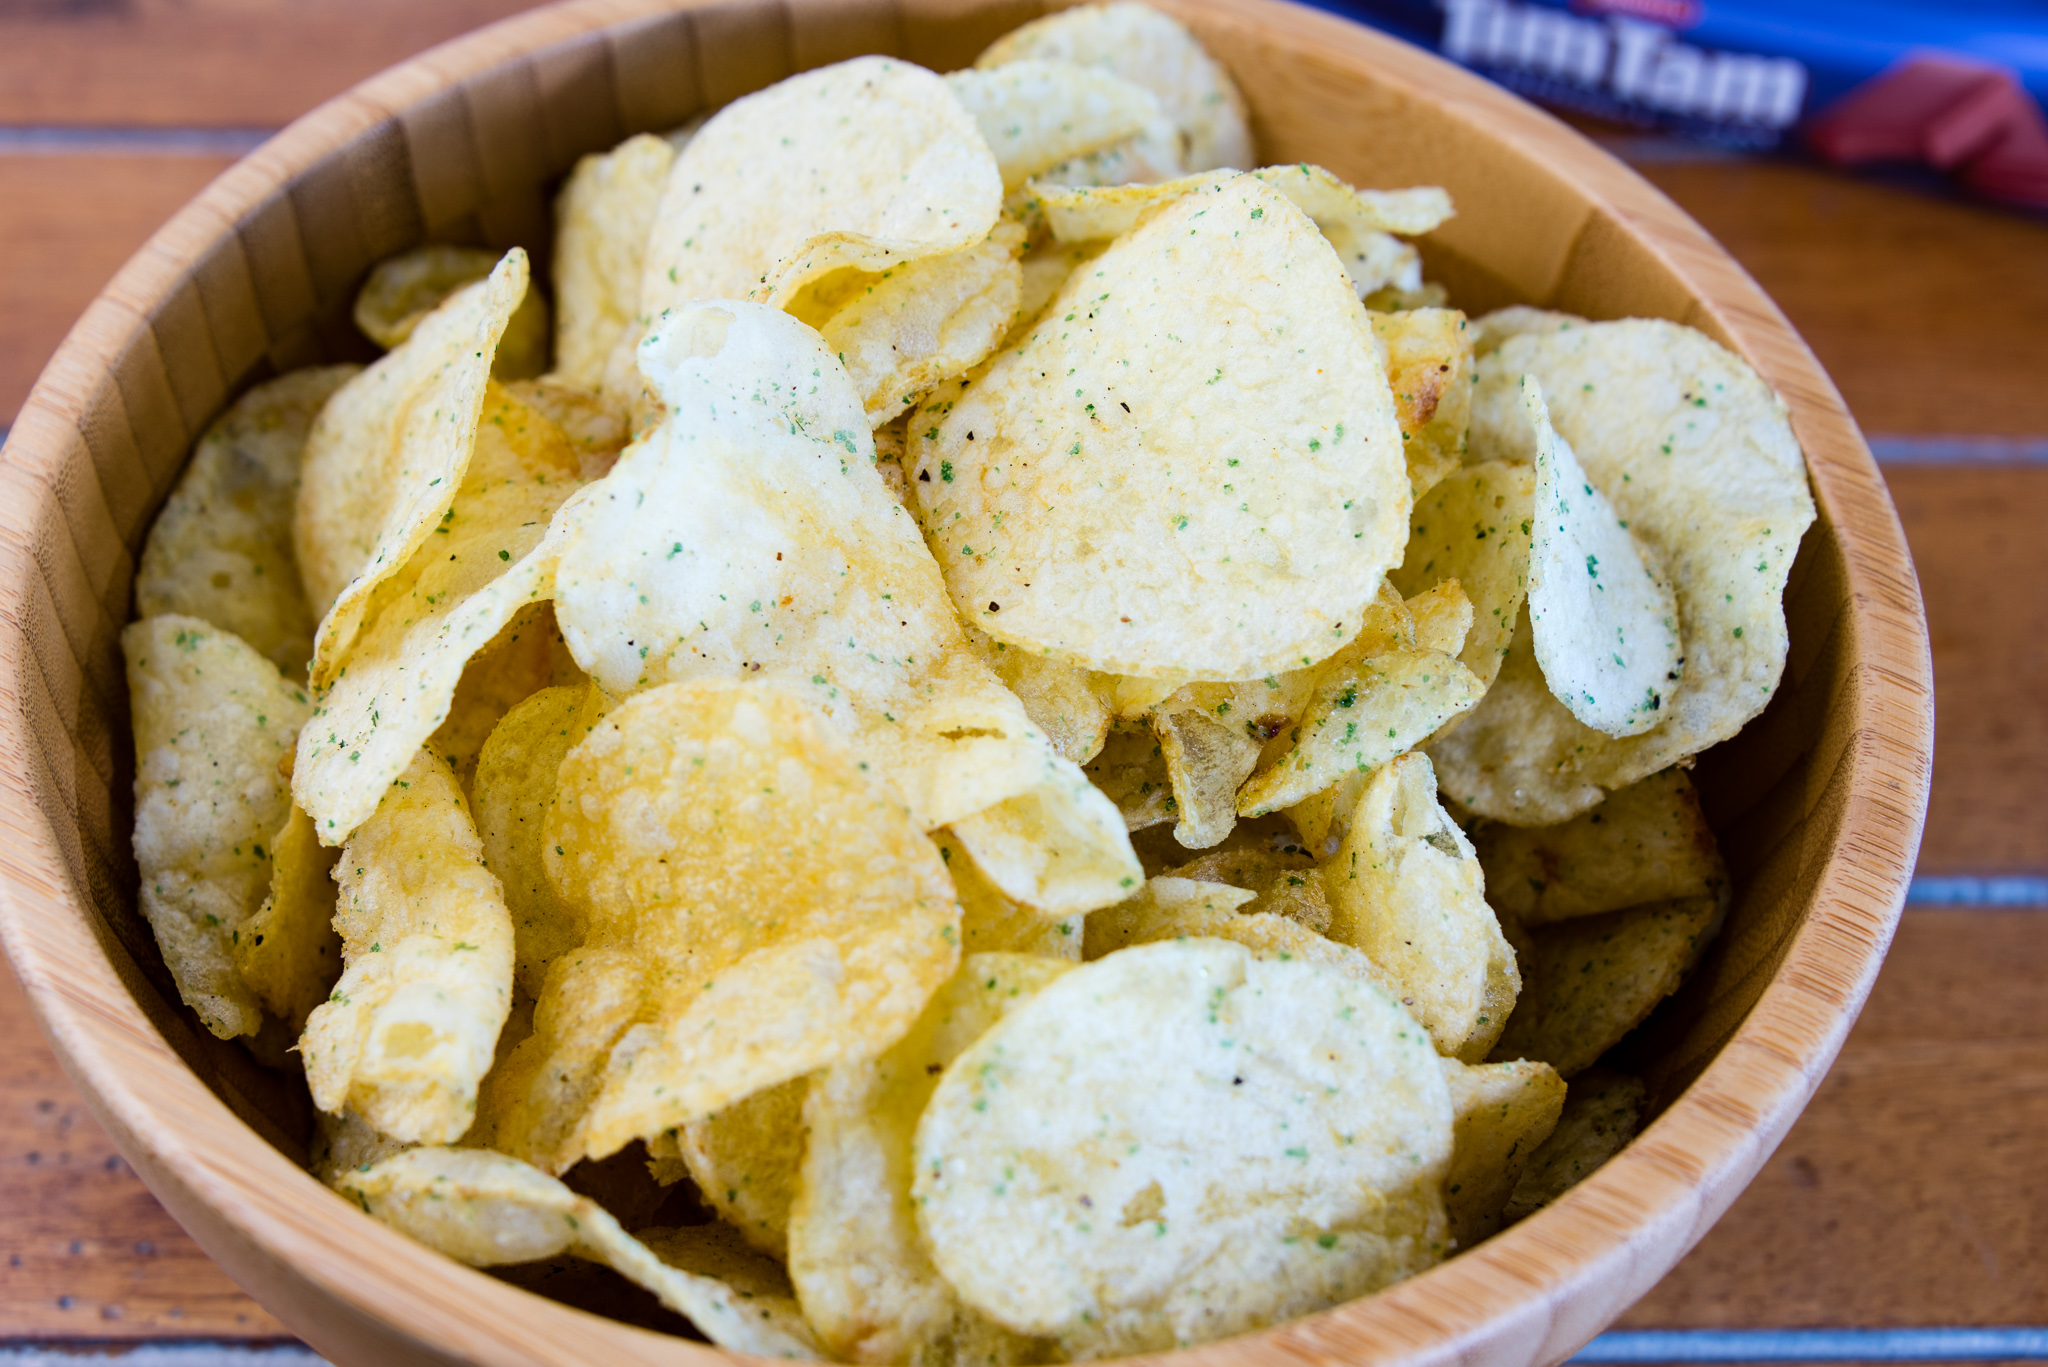 Gary Lum Lime and pepper chips